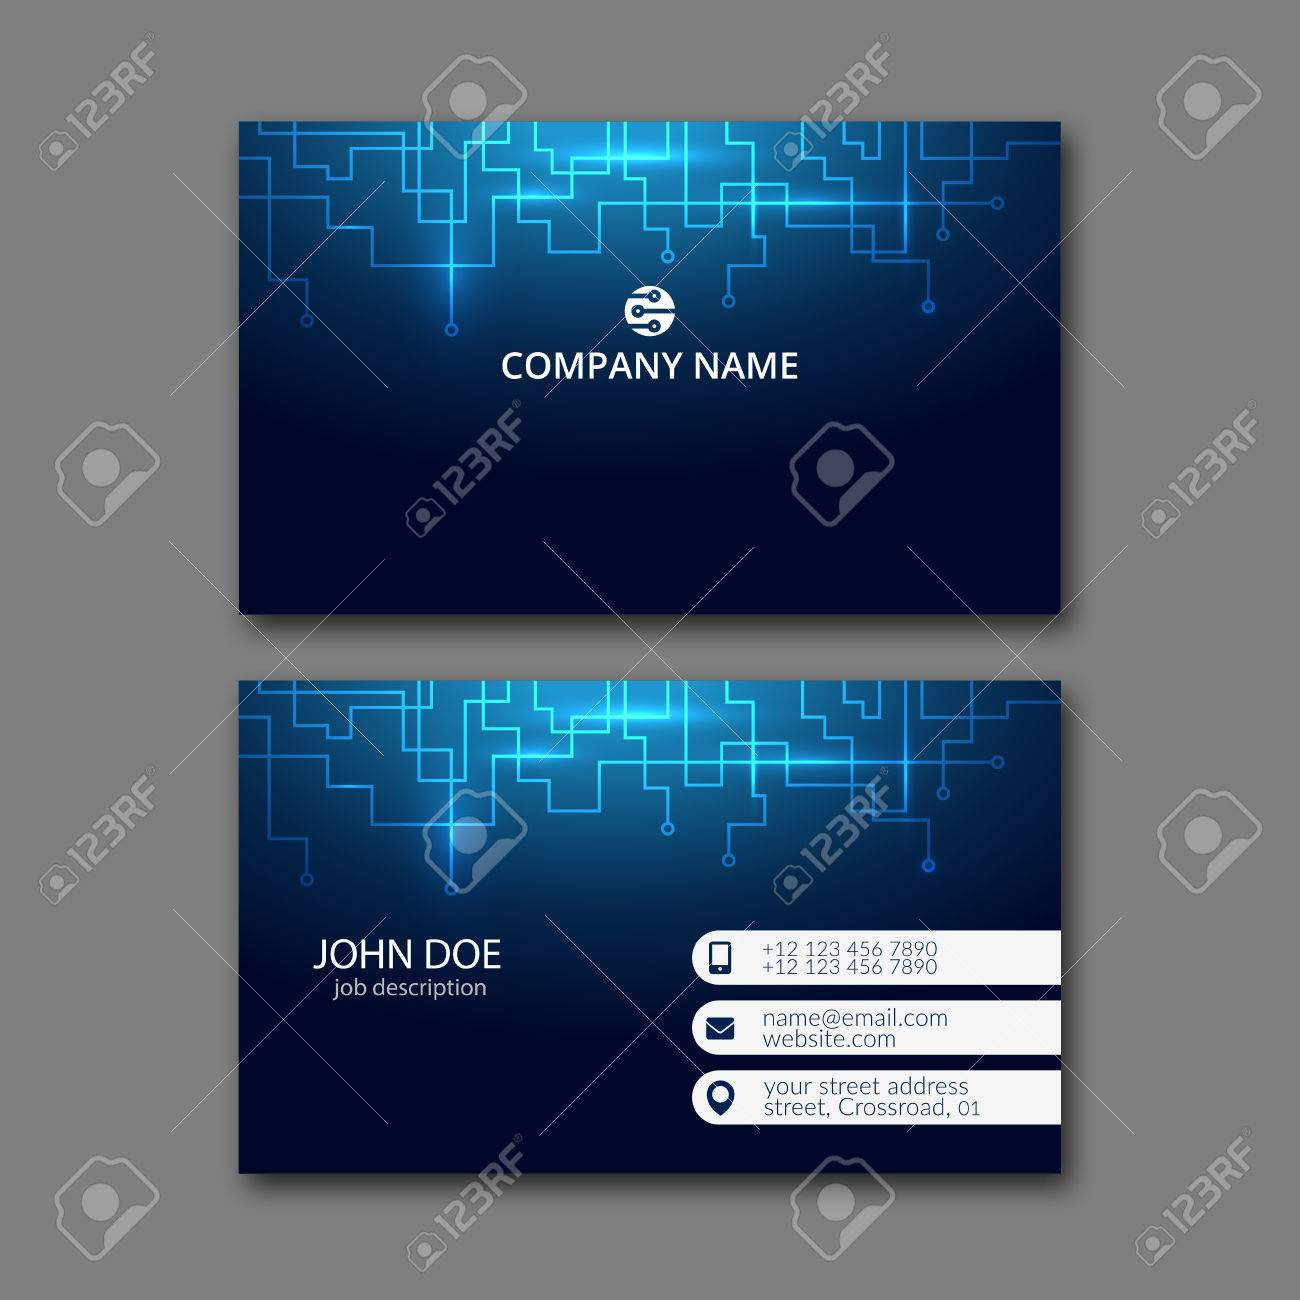 Elegant business card design template for creative design royalty elegant business card design template for creative design stock vector 67780553 colourmoves